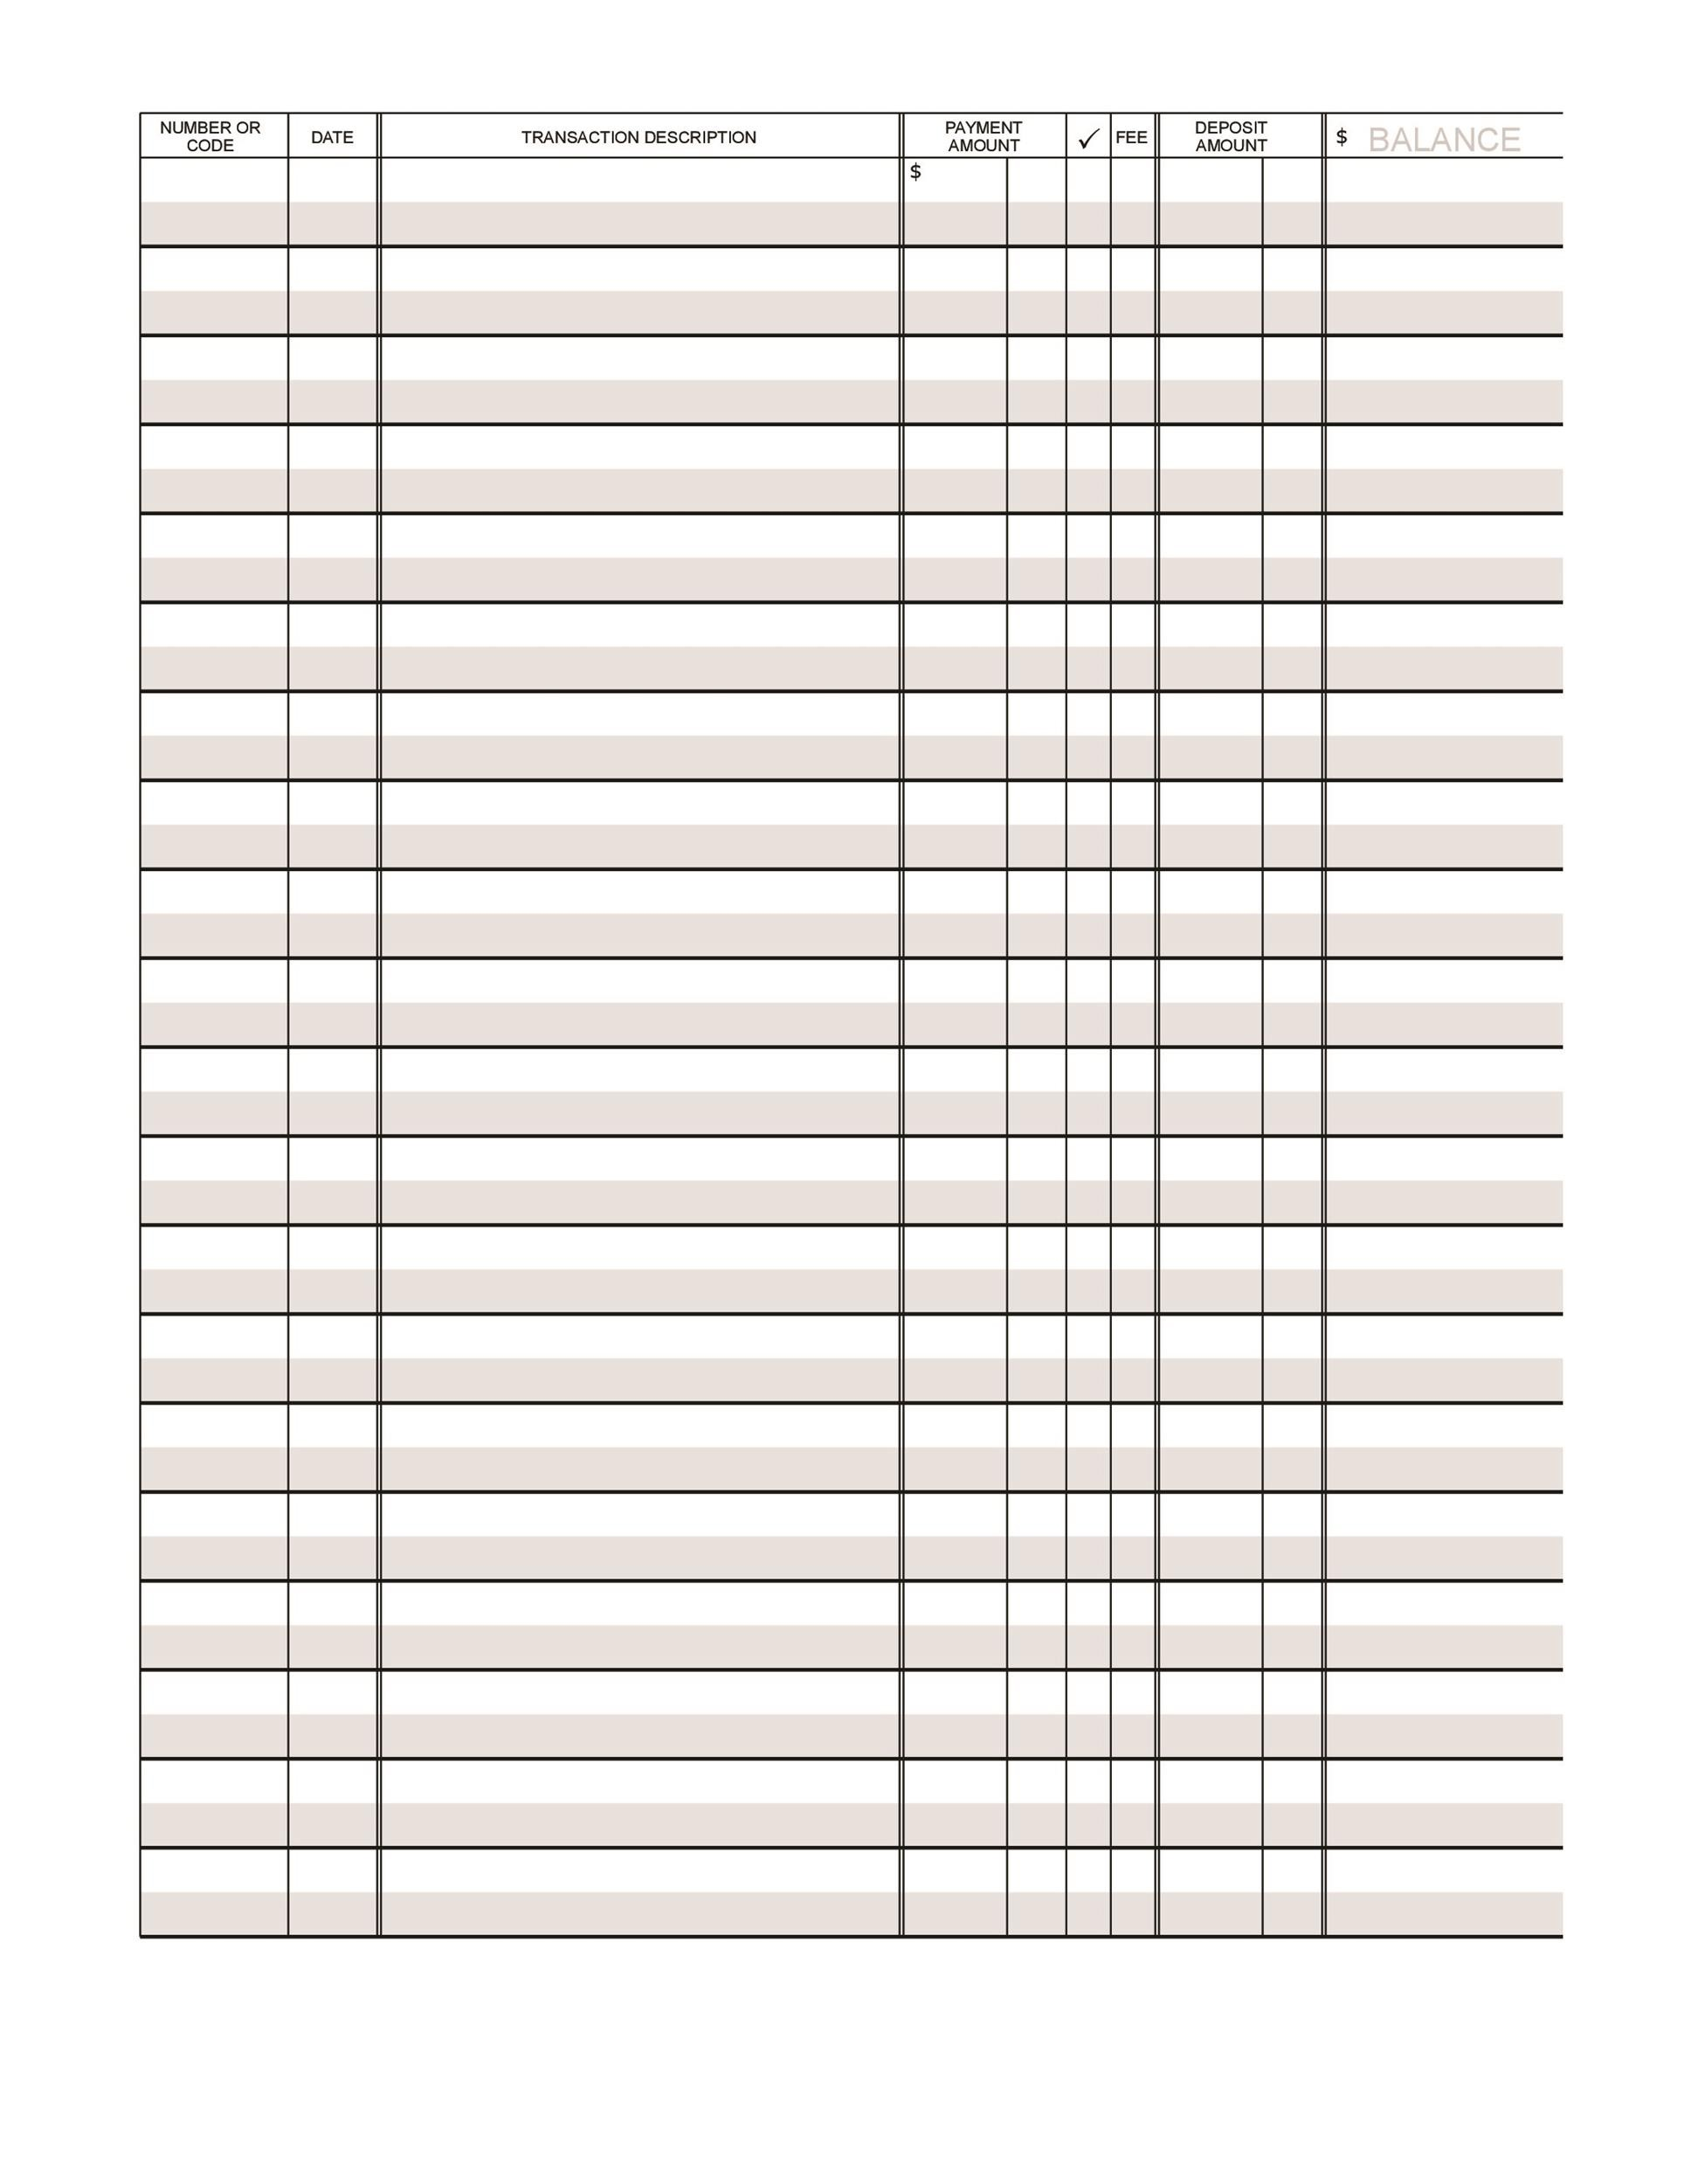 printable check register full page 37 checkbook register templates 100 free printable 24061